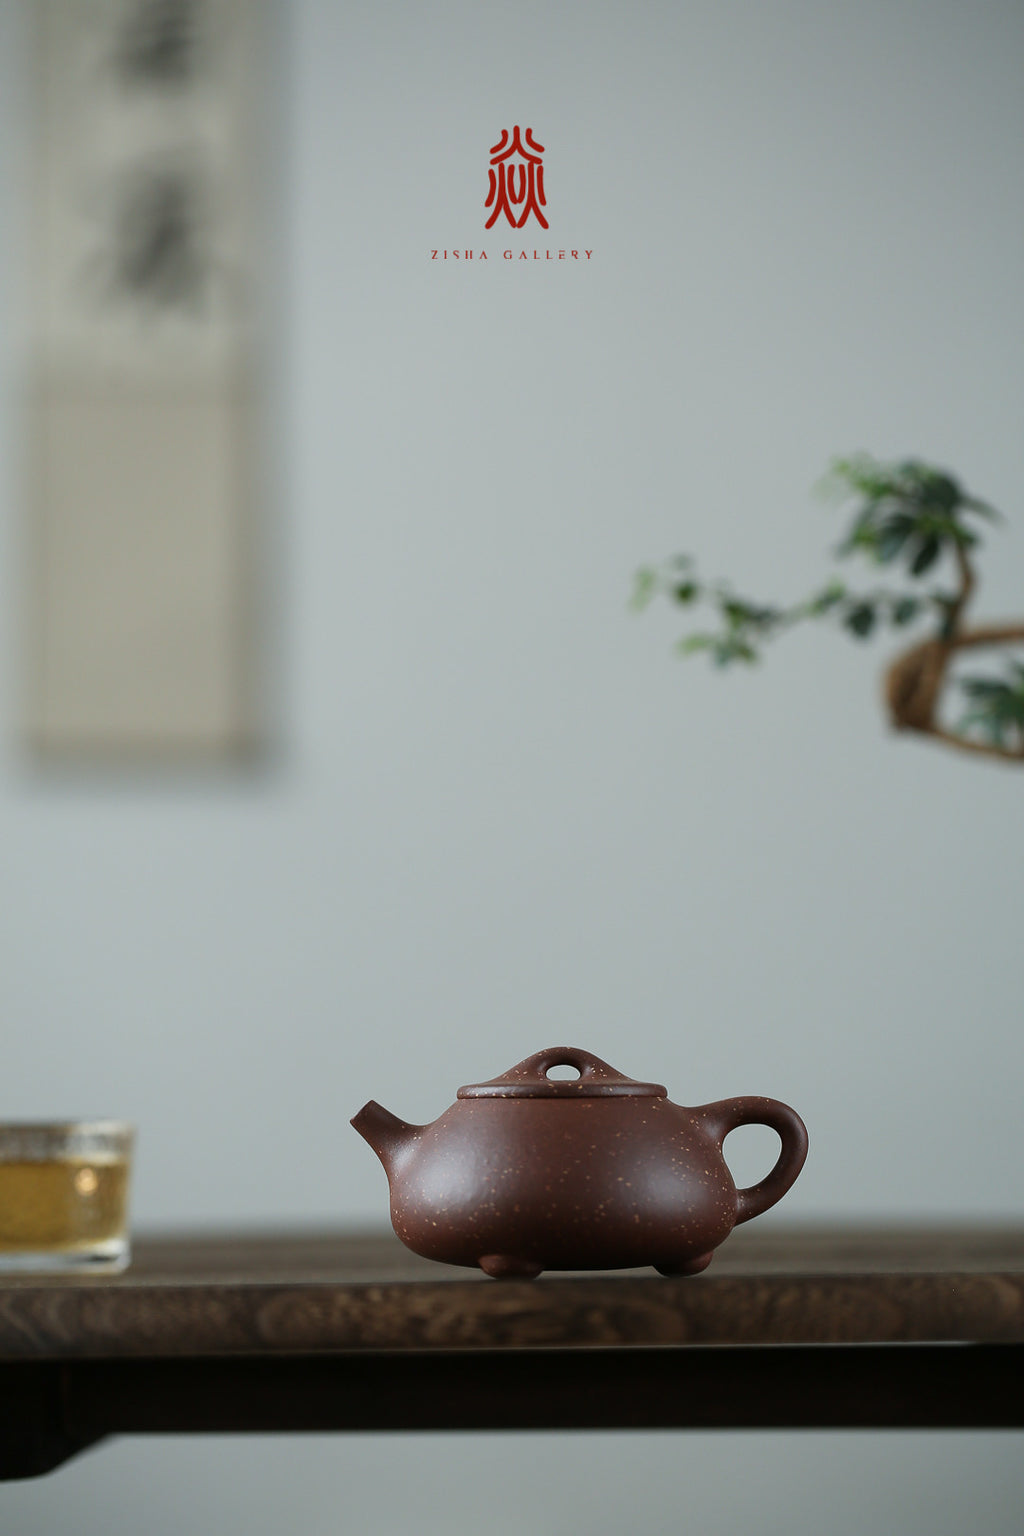 Man Shi Piao 满石瓢 120ml  紫玉金砂 Zini 佘荣飞 She Rong Fei - The Phans Yixing Zisha Teapot